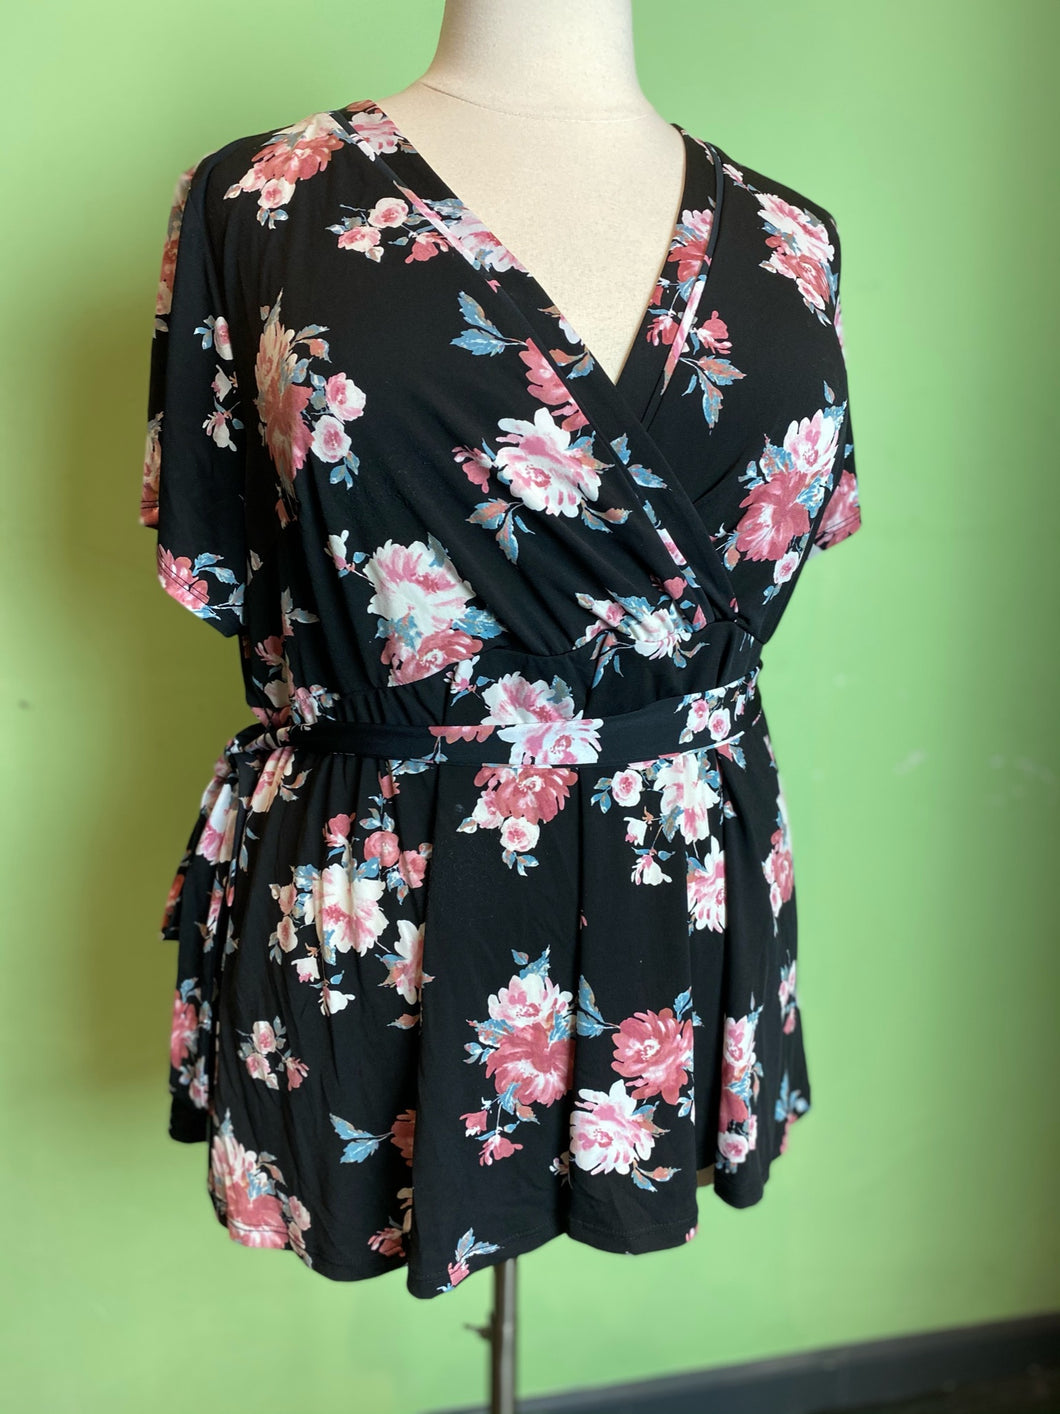 Black and Pink Floral Torrid Wrap Top, Size 3